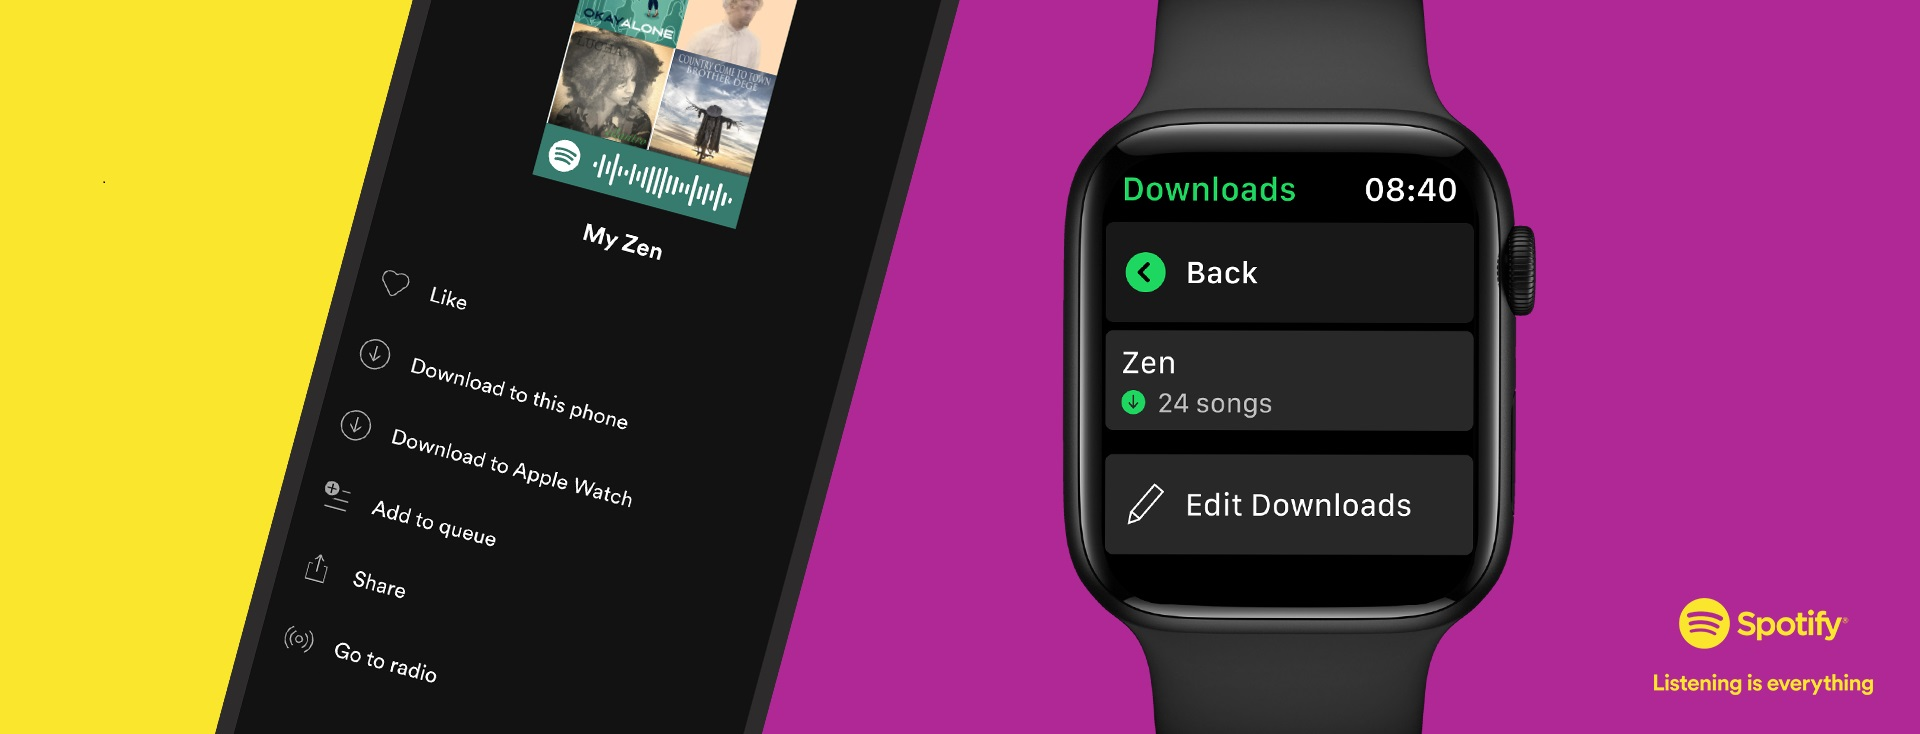 Apple Watch Support Spotify Song Download